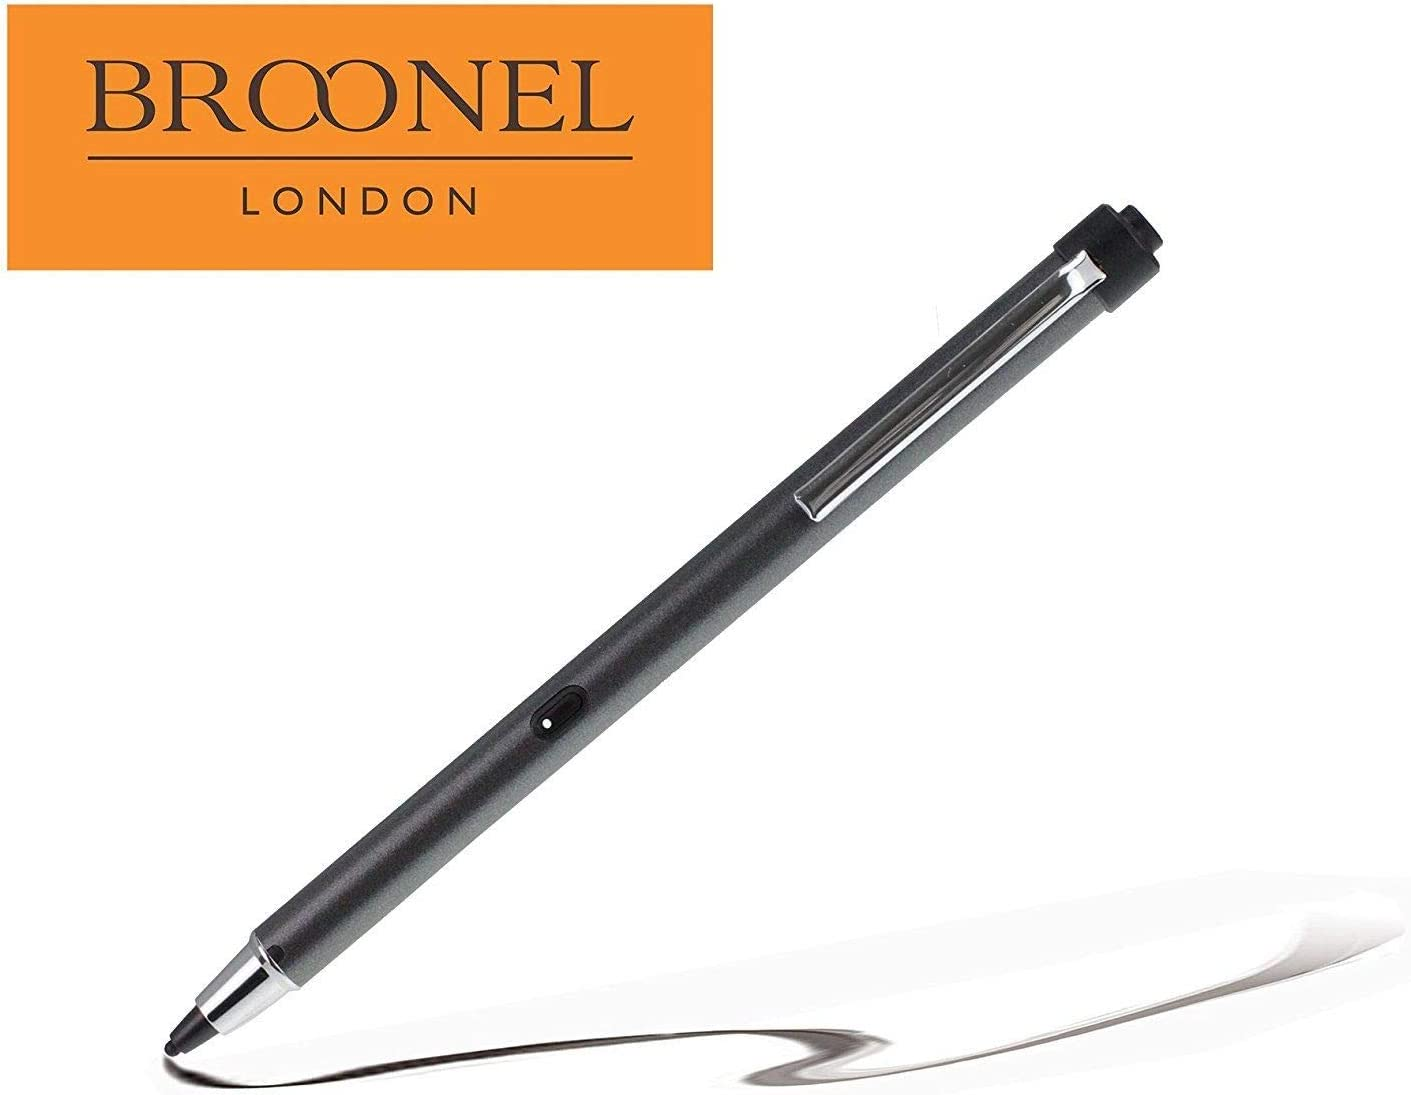 ASUS Chromebook C202SA-YS02 11.6 Broonel Grey Rechargeable Fine Point Digital Stylus Compatible with The ASUS Chromebook C202SA 11.6 Inch